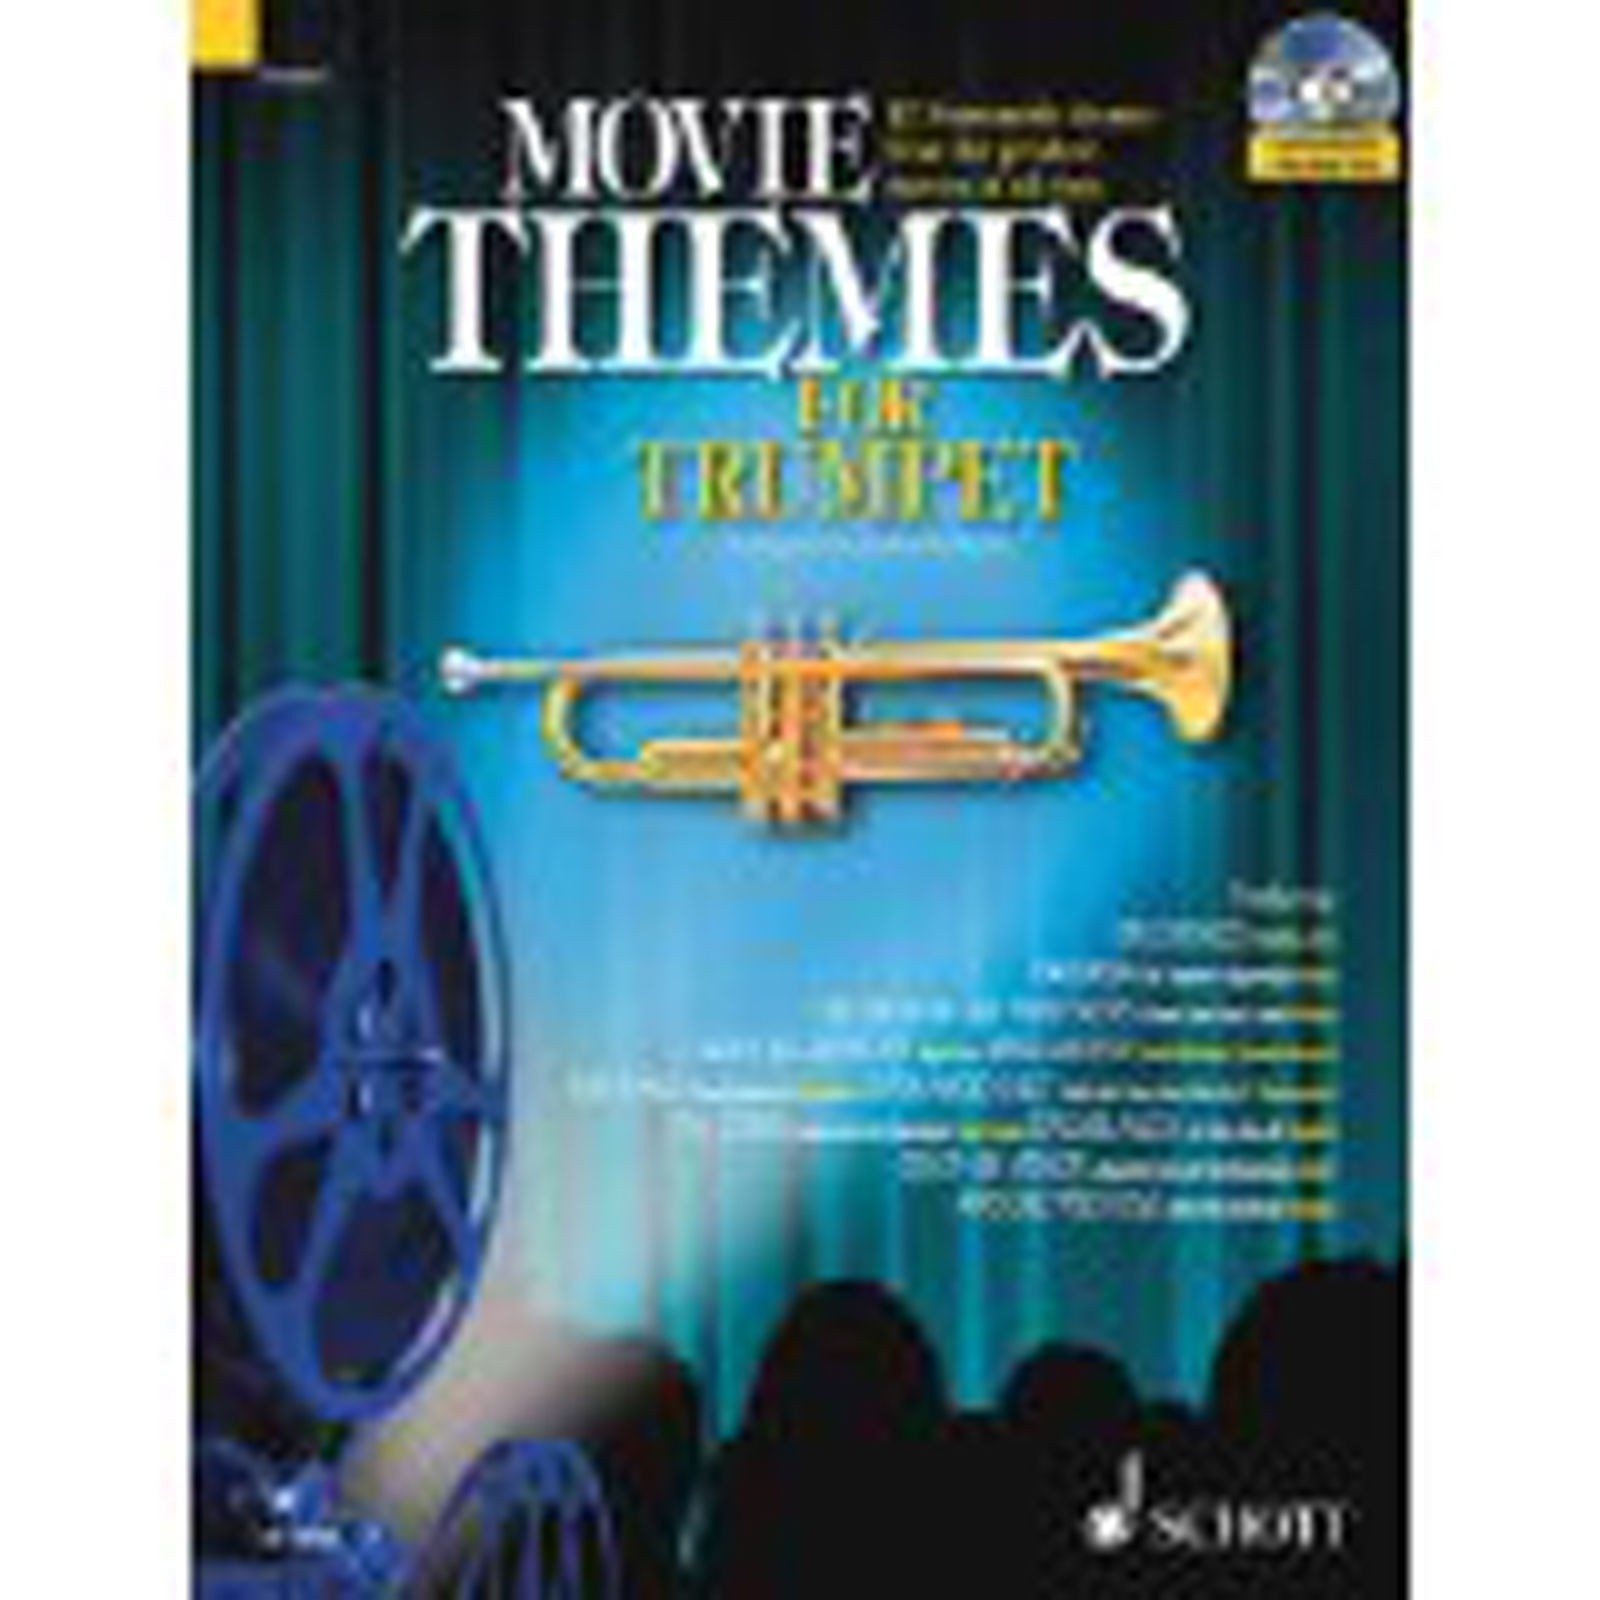 Movie Themes for Trumpet Book Playalong CD Film Music Max Charles Davies S93 S57